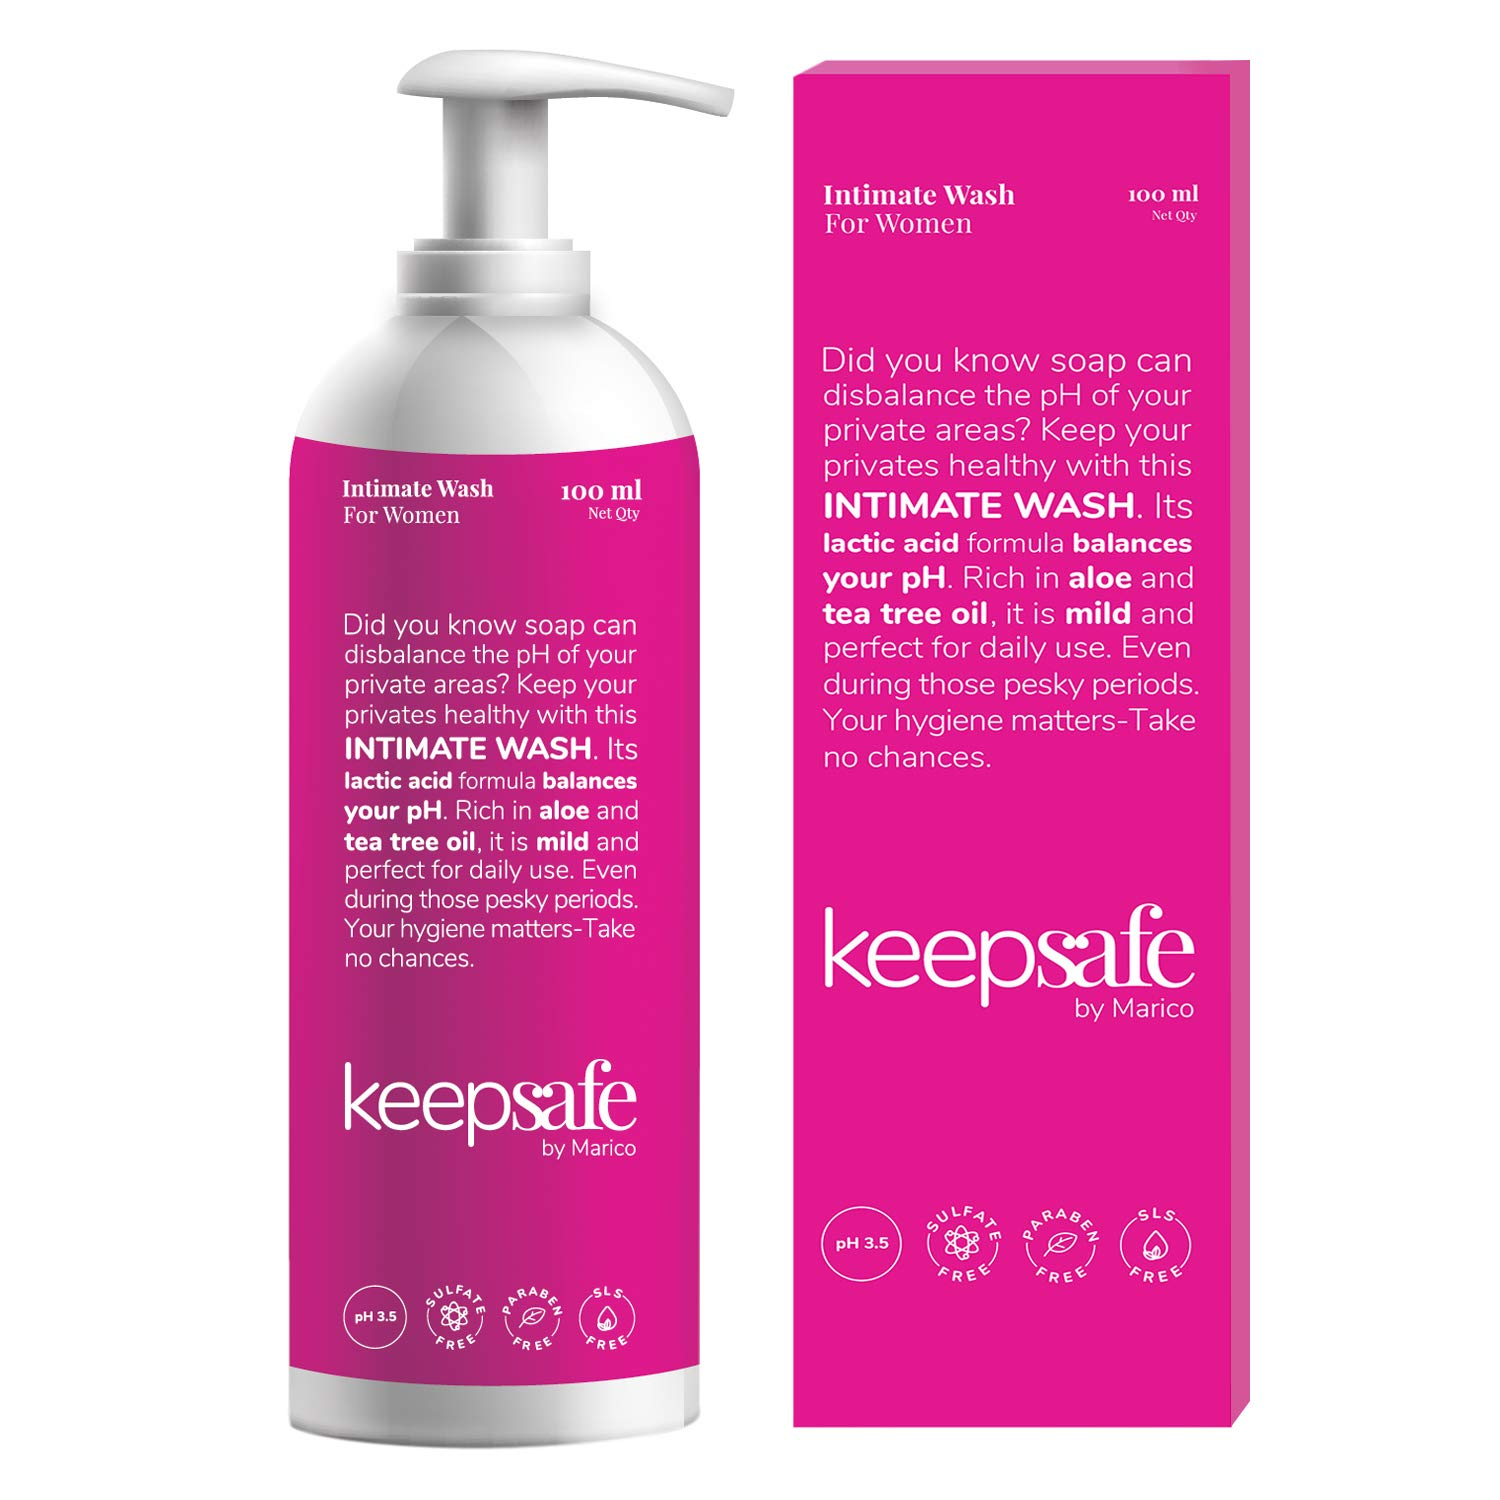 KeepSafe by Marico Intimate Wash for Women, Rich in Aloe & Tea Tree Oil, Healthy Intimate Hygiene, Anti-bacterial, Anti-fungal, No Sulphate, No Paraben, Travel-Friendly Pack, 100 ml